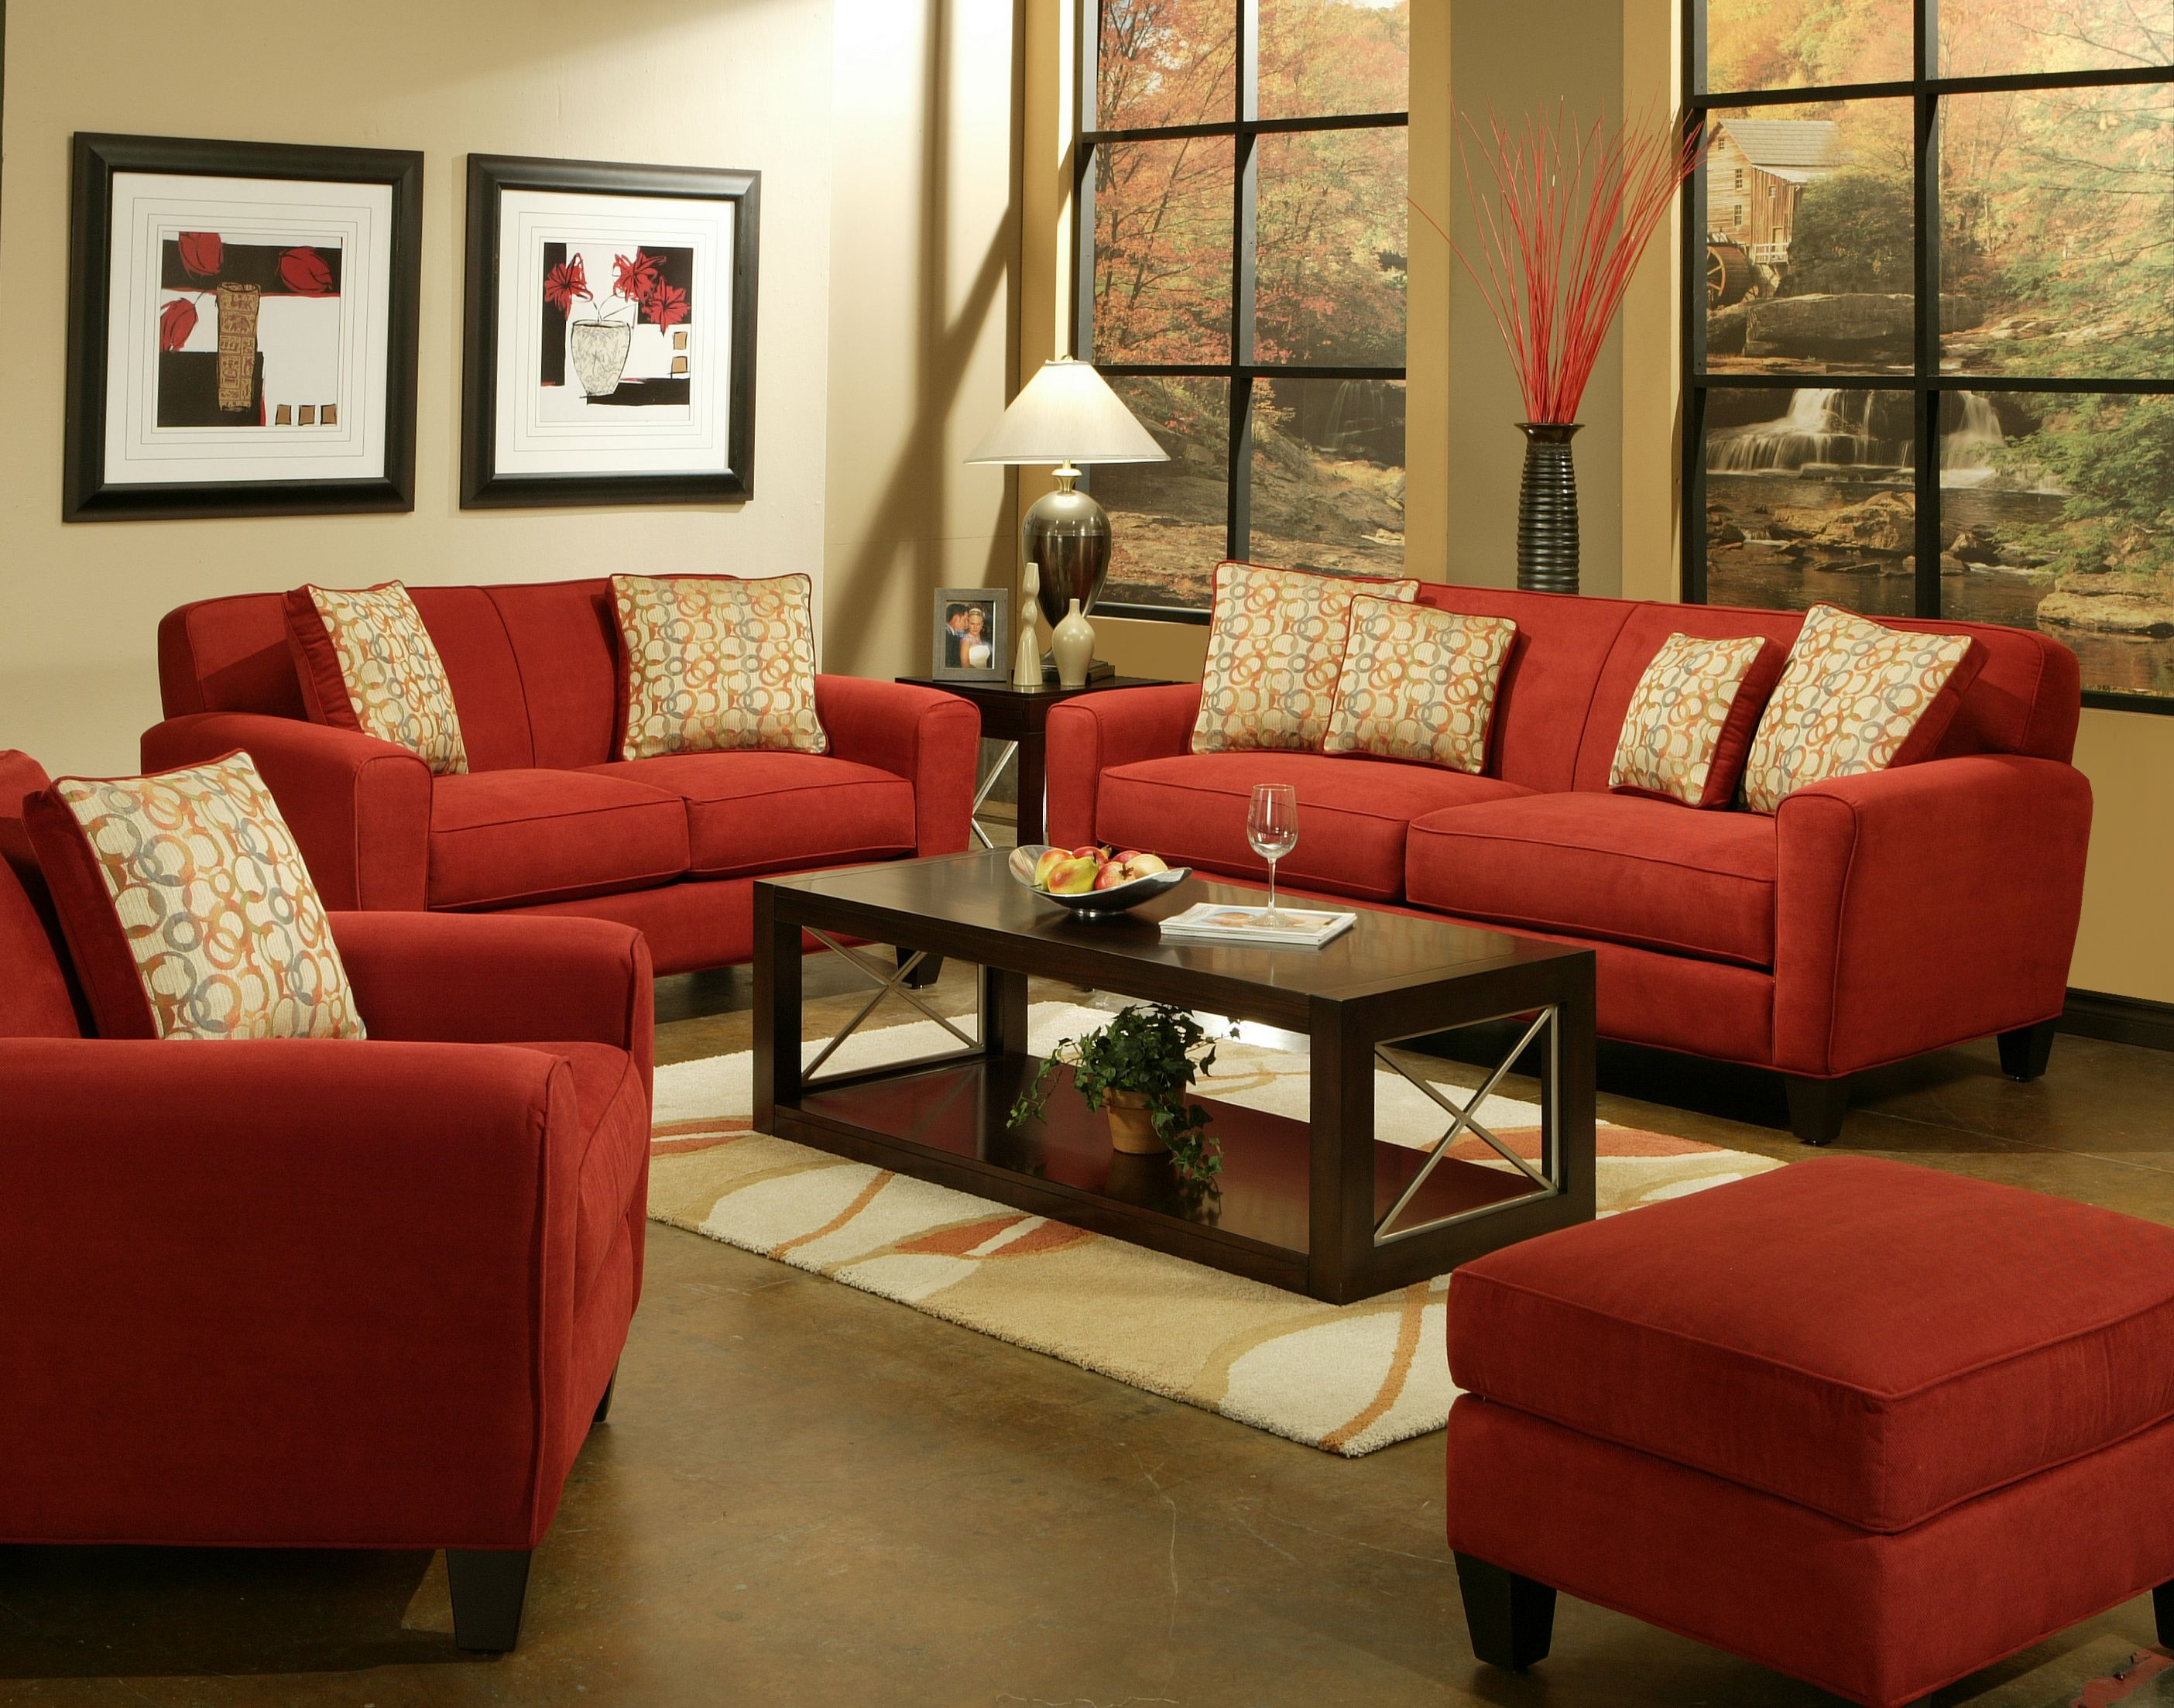 Lauren Sofa Sofa Sleeper Loveseat Chair Ottoman Accent Chairs Ottomans Also Available Red Couch Living Room Home Room Design Furniture